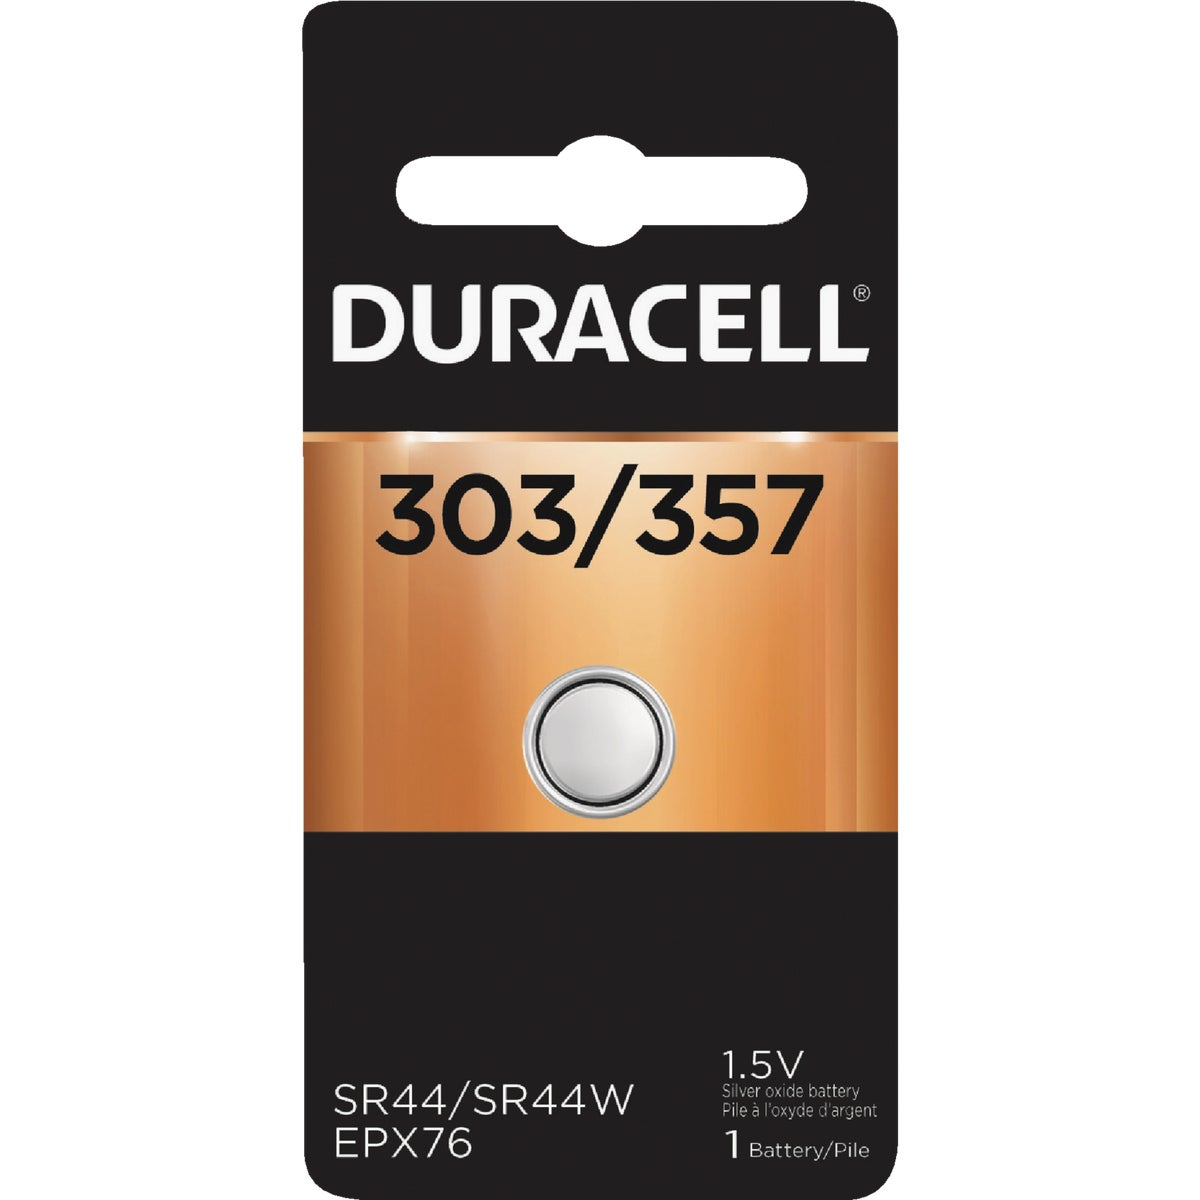 D303/357 1.5V WA BATTERY - 40087 by P & G  Duracell